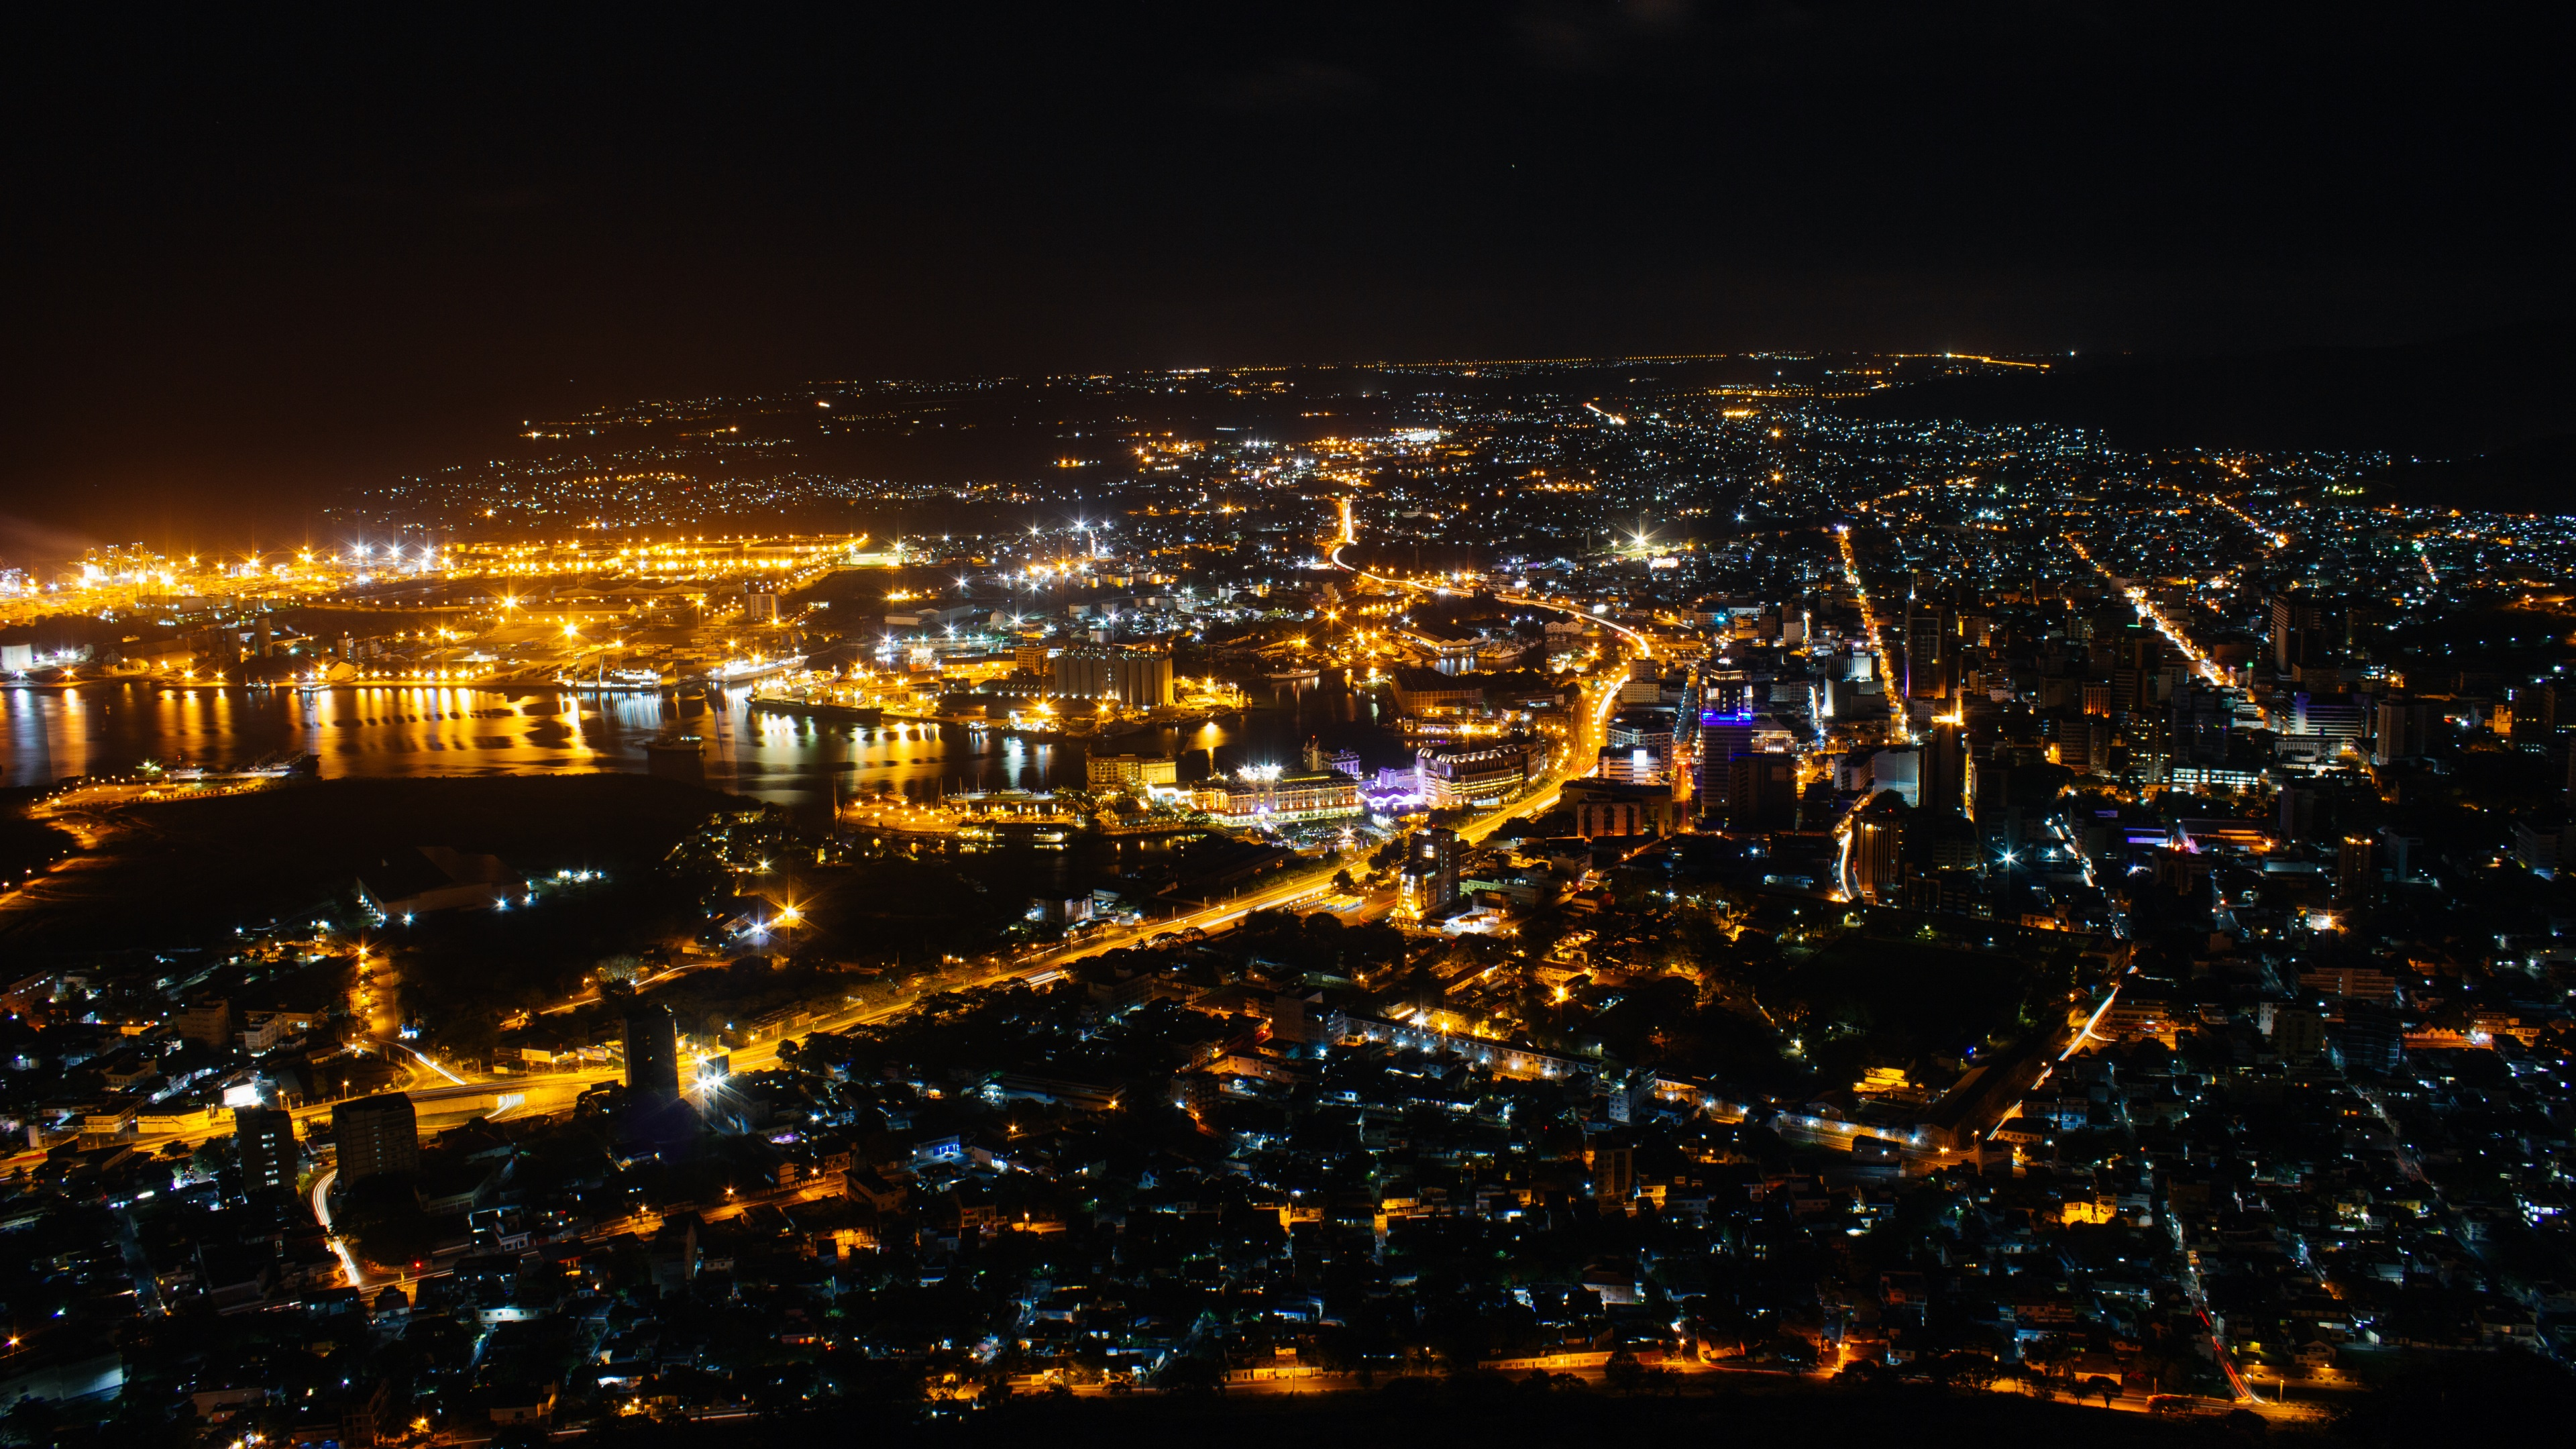 Port Louis 4k Ultra HD Wallpaper And Background Image